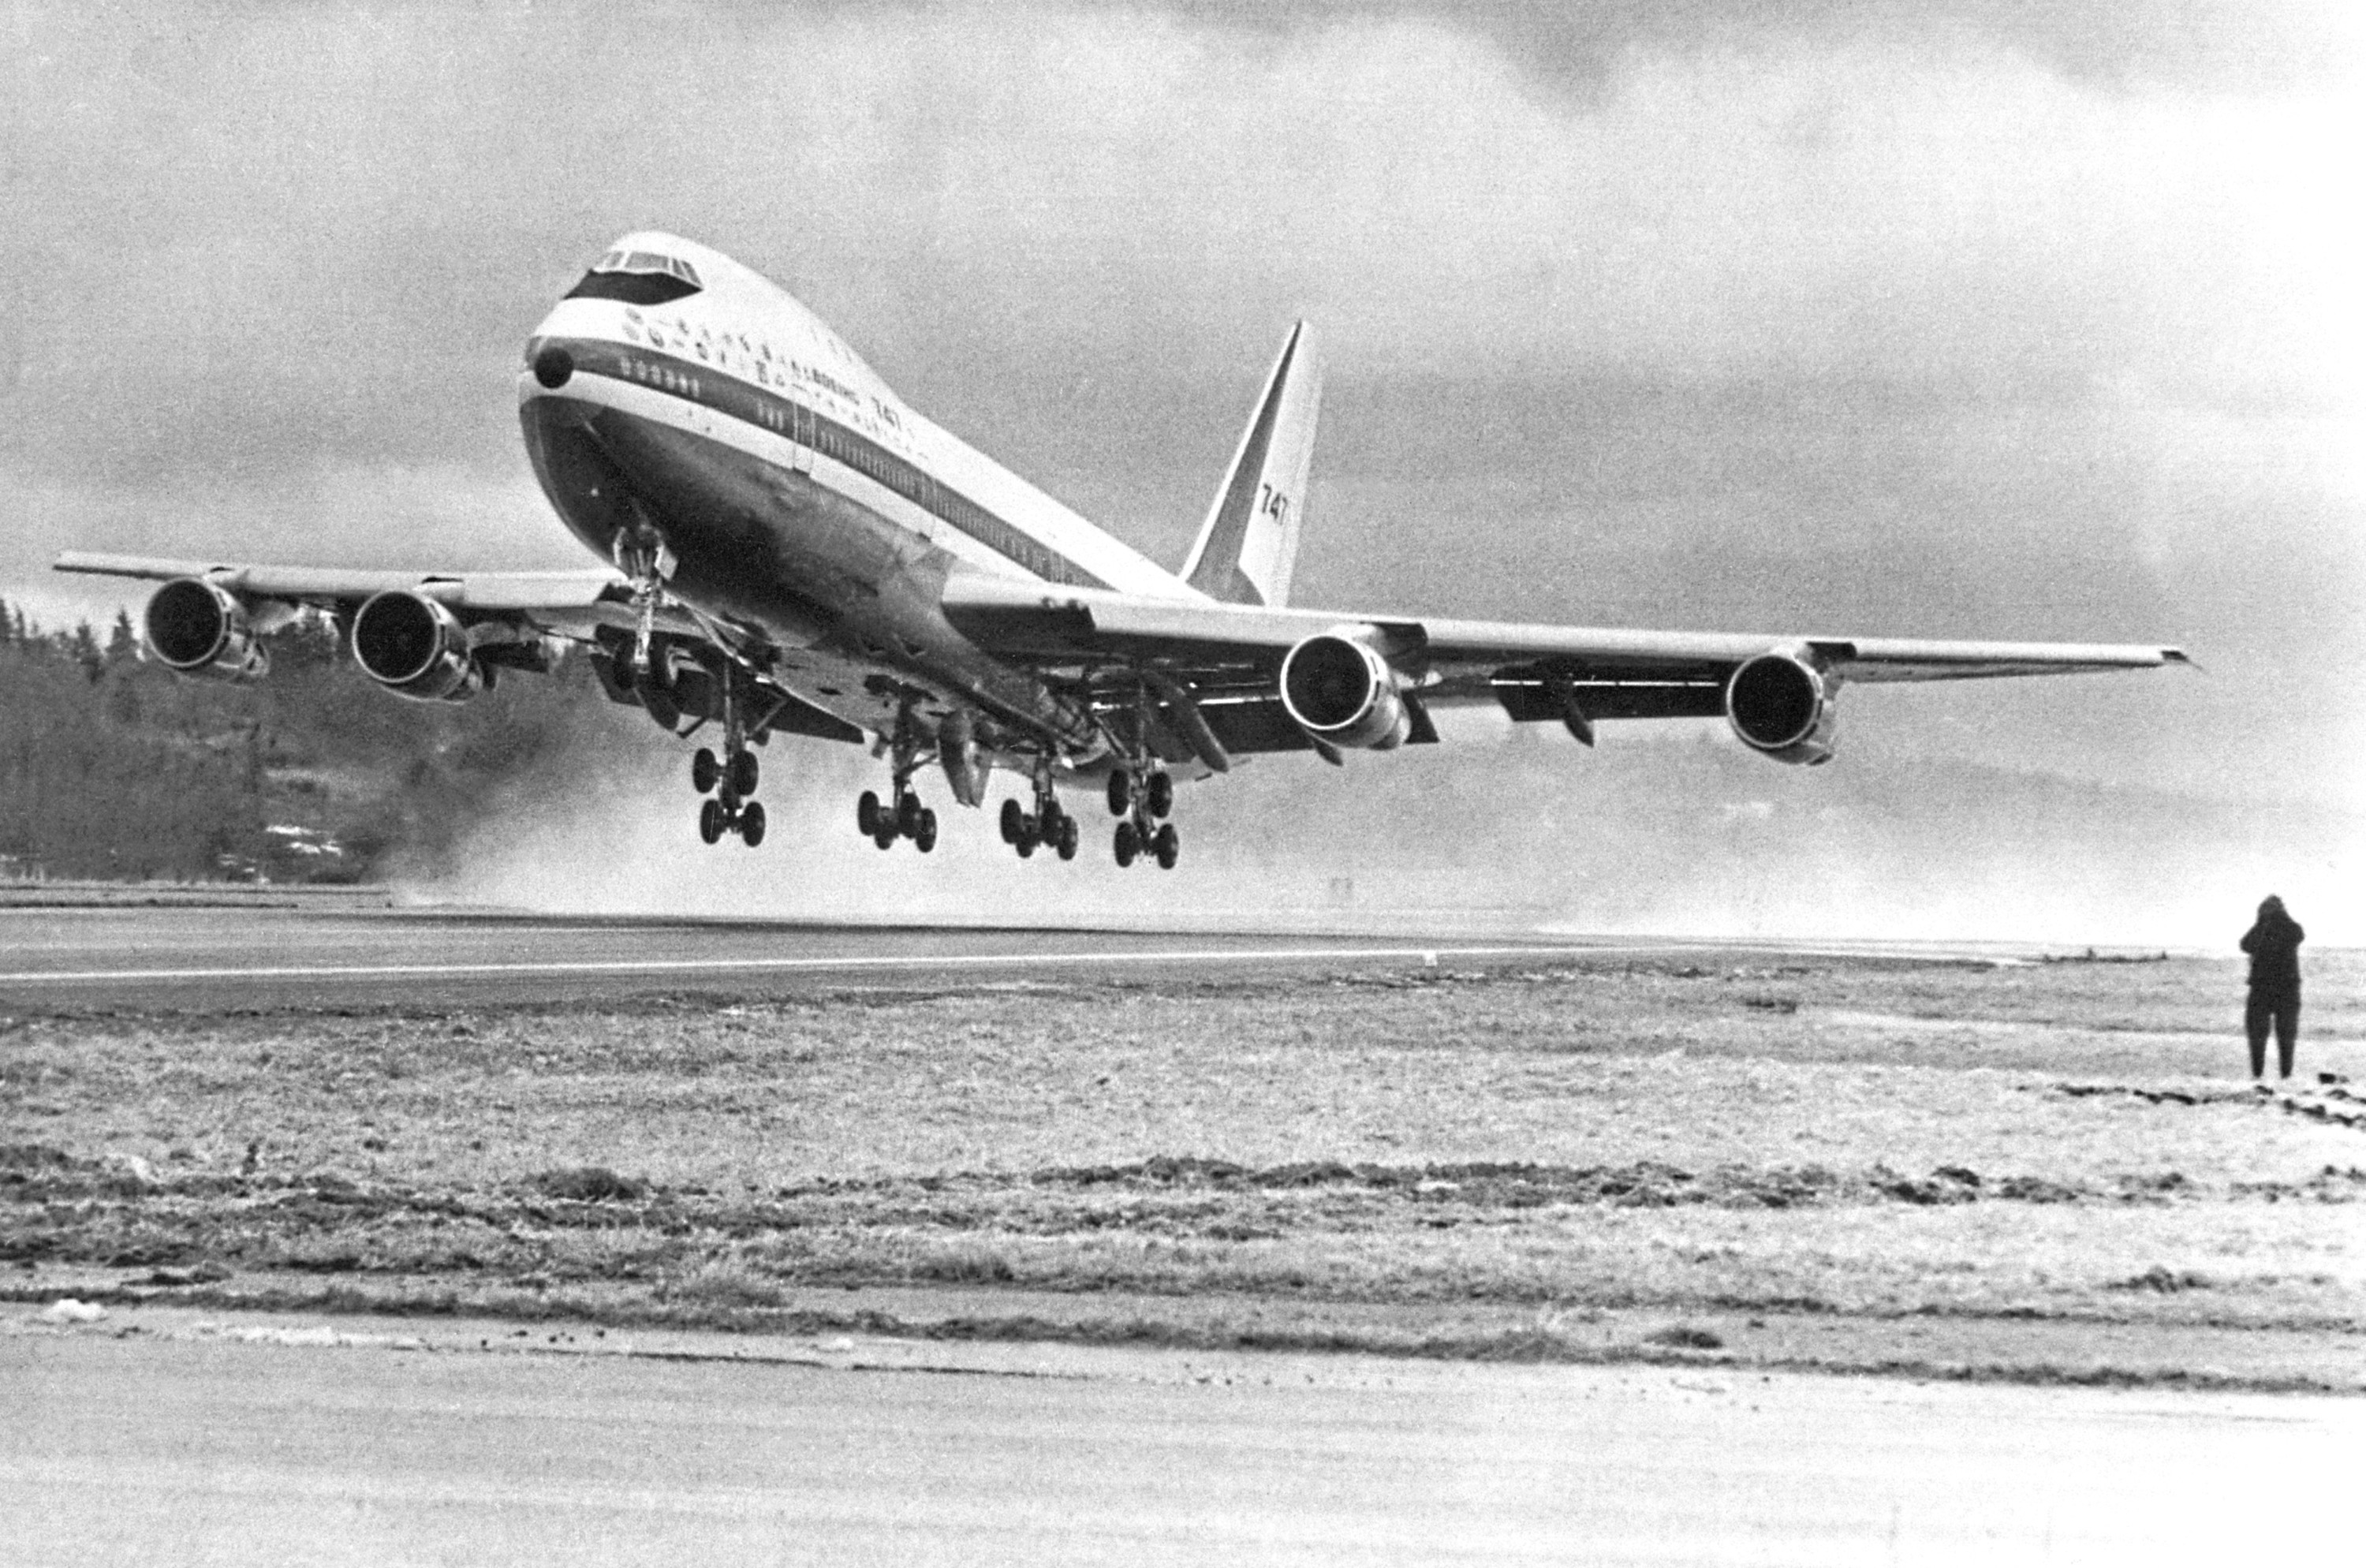 Fifty years on, Boeing's 747 jumbo jet has changed travel